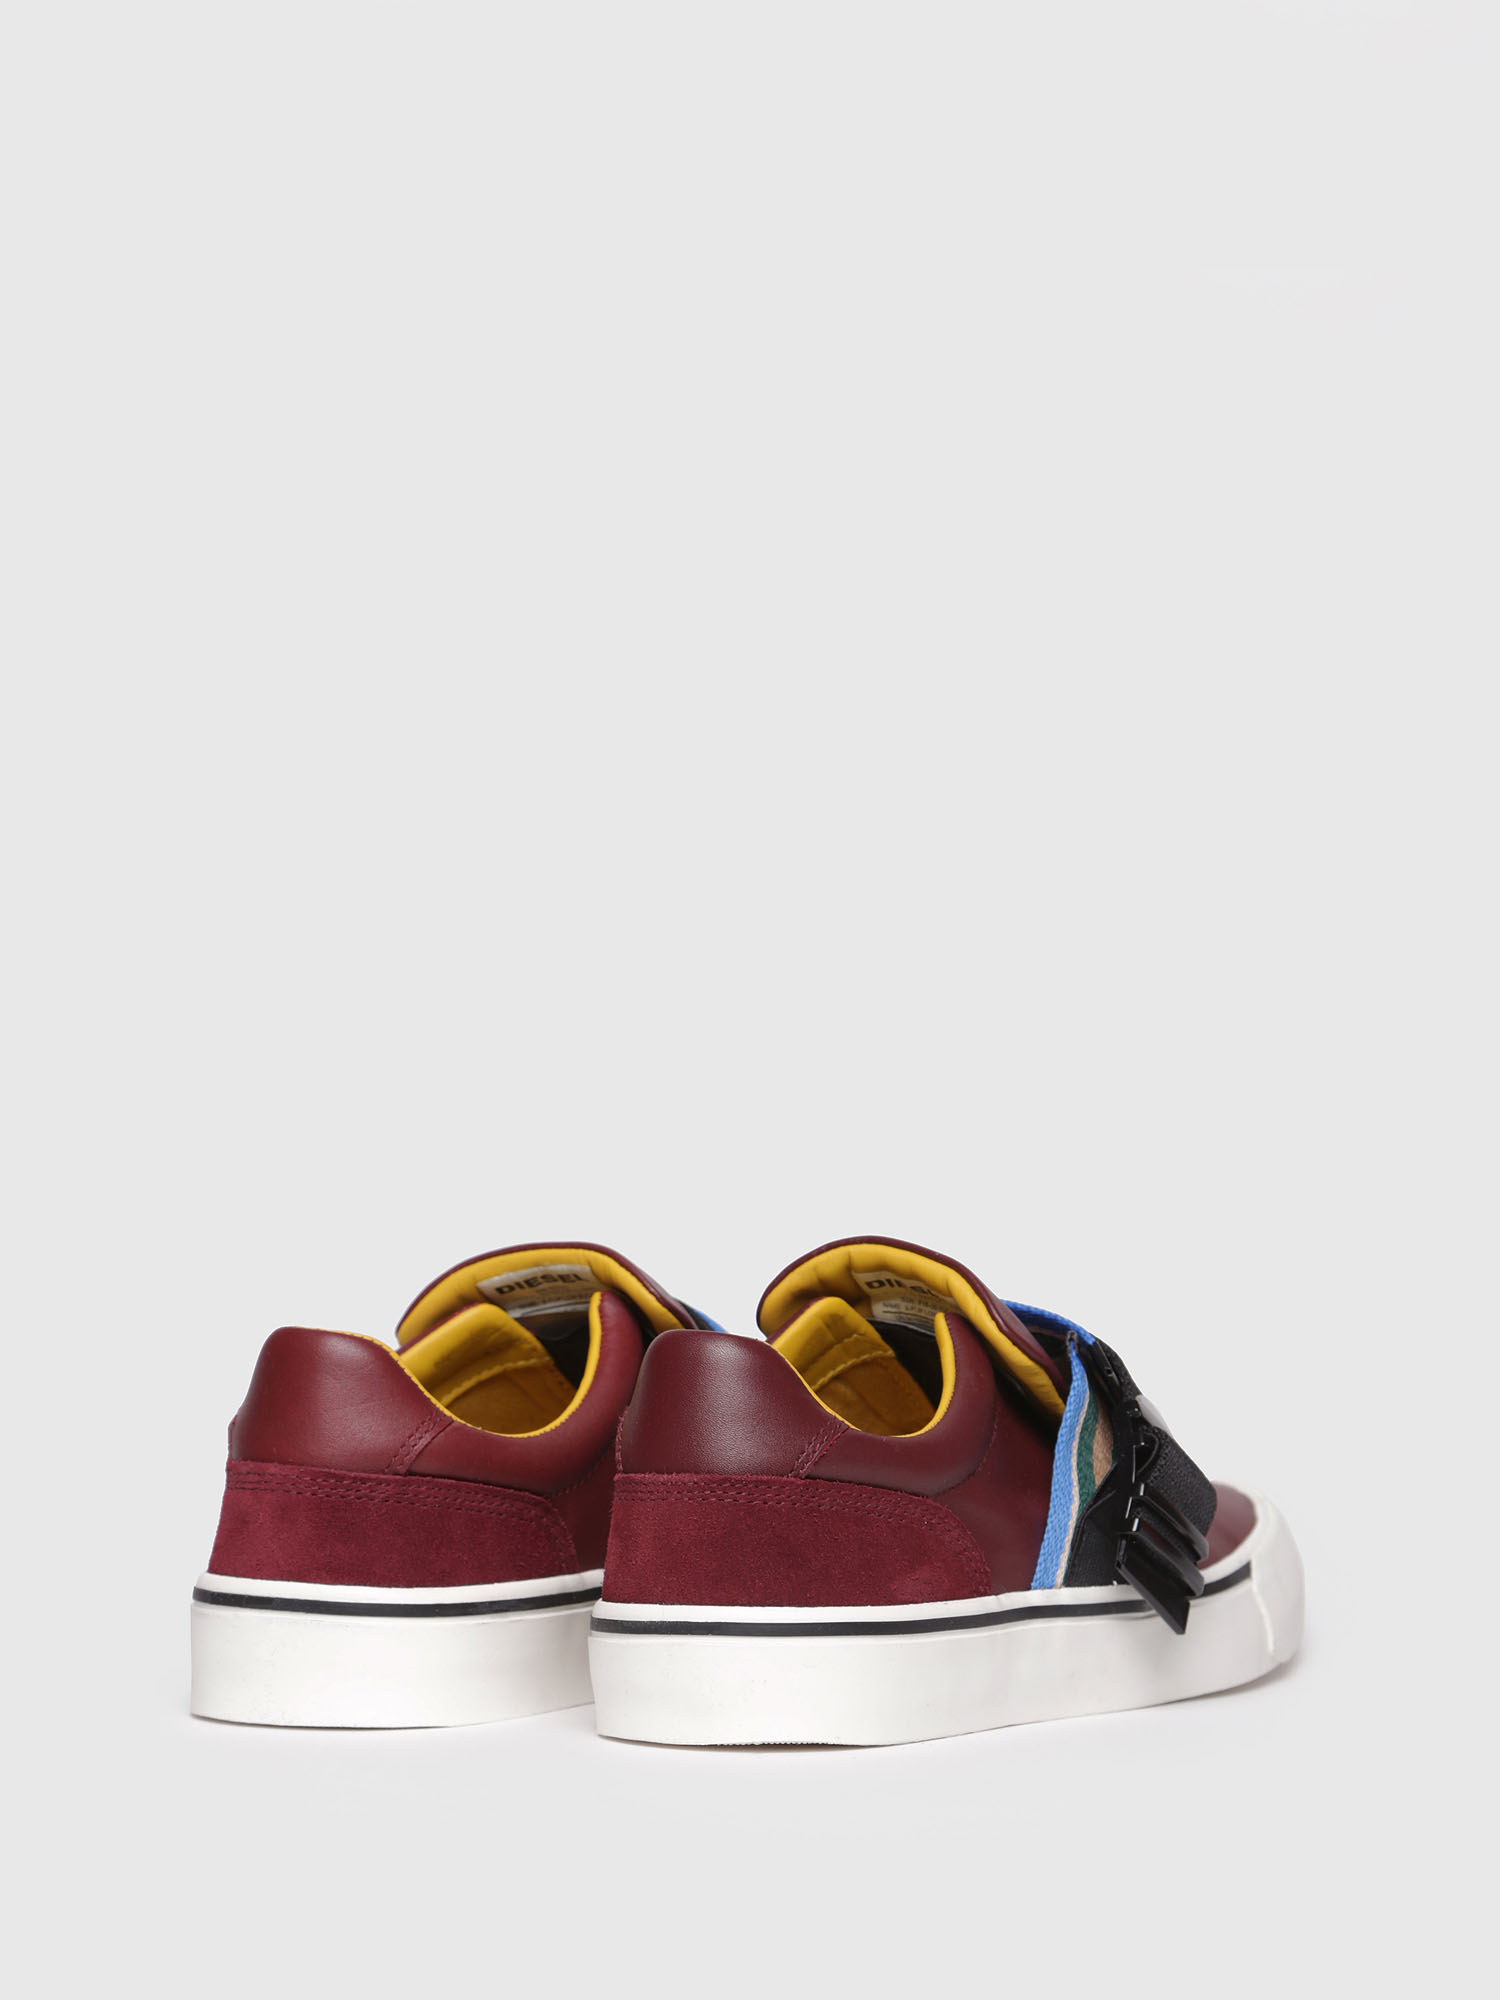 Diesel - S-FLIP LOW BUCKLE W,  - Sneakers - Image 3